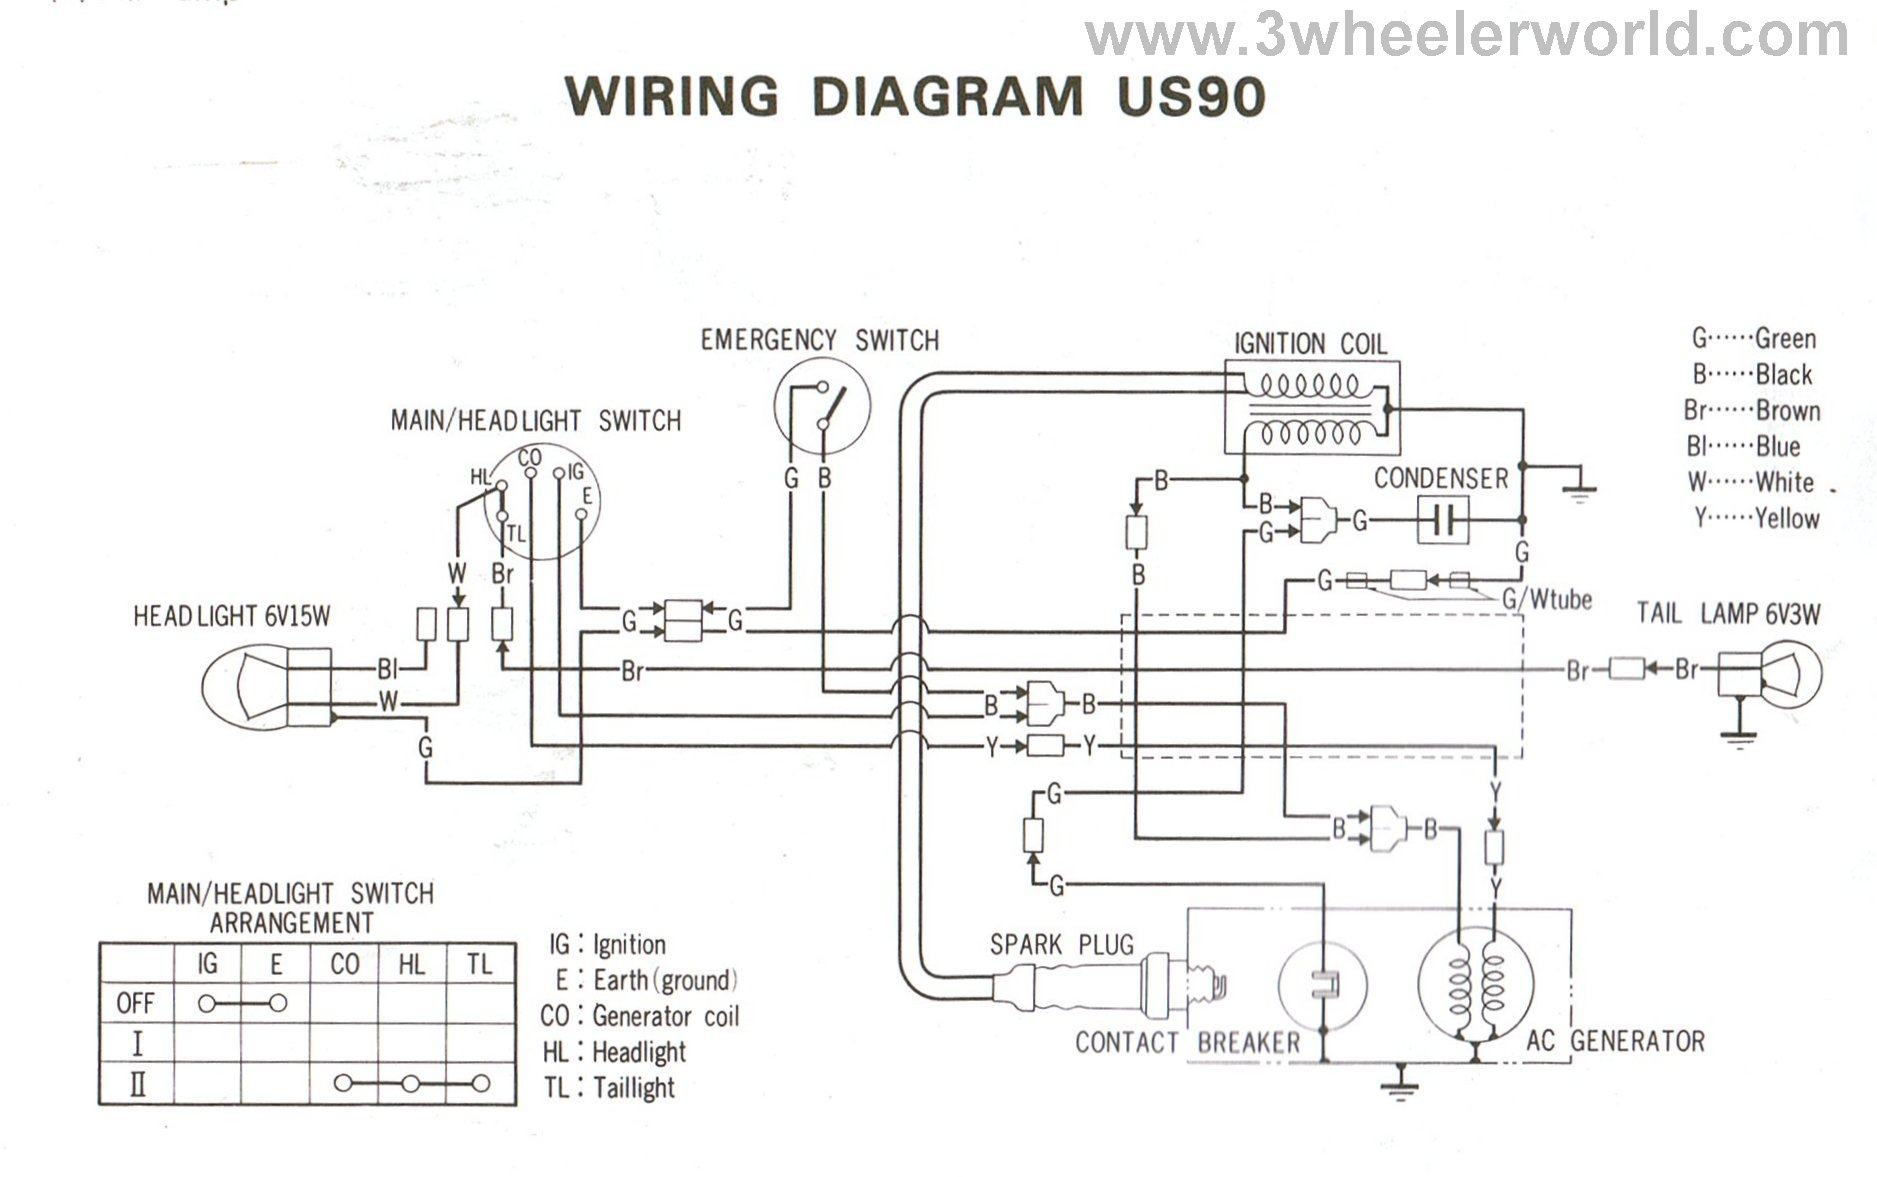 3 WHeeLeR WoRLD-Tech Help Honda Wiring Diagrams on